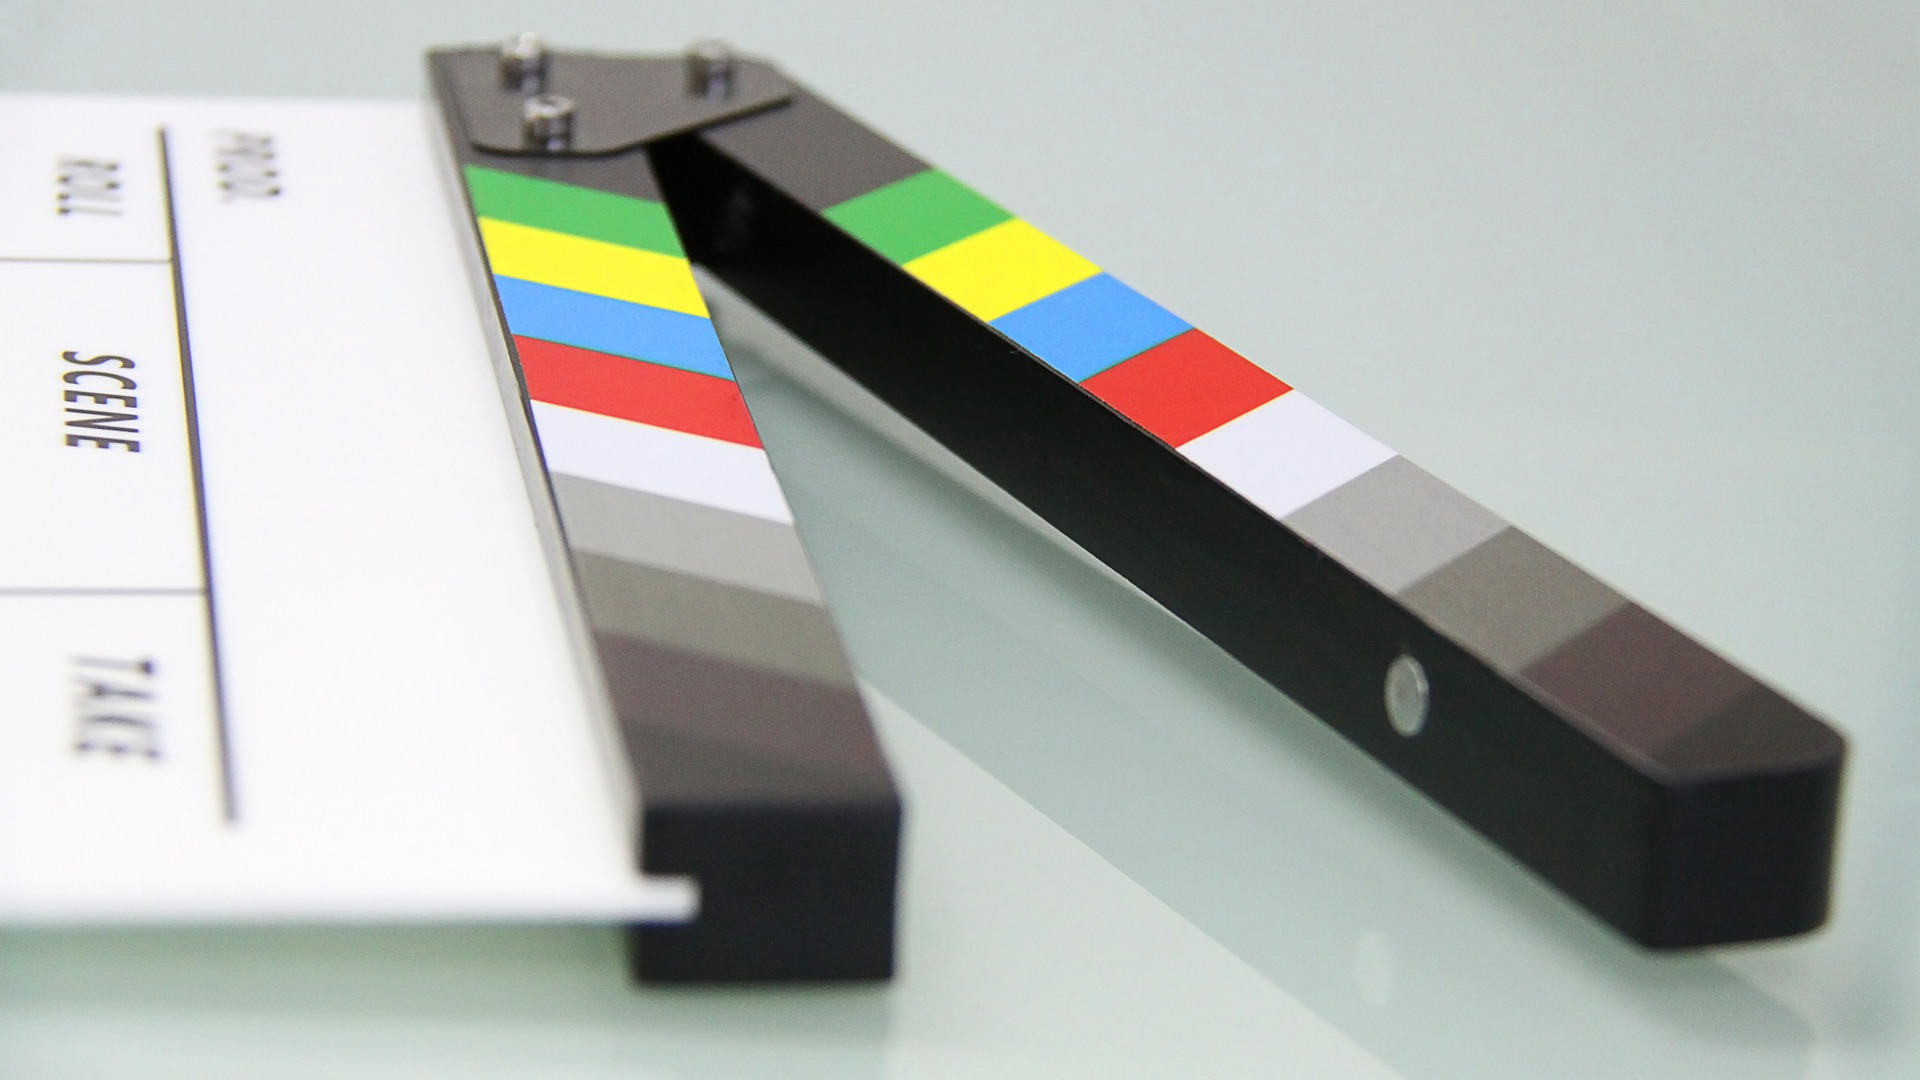 5 Proven Ways a Good Video Can Help Your Business